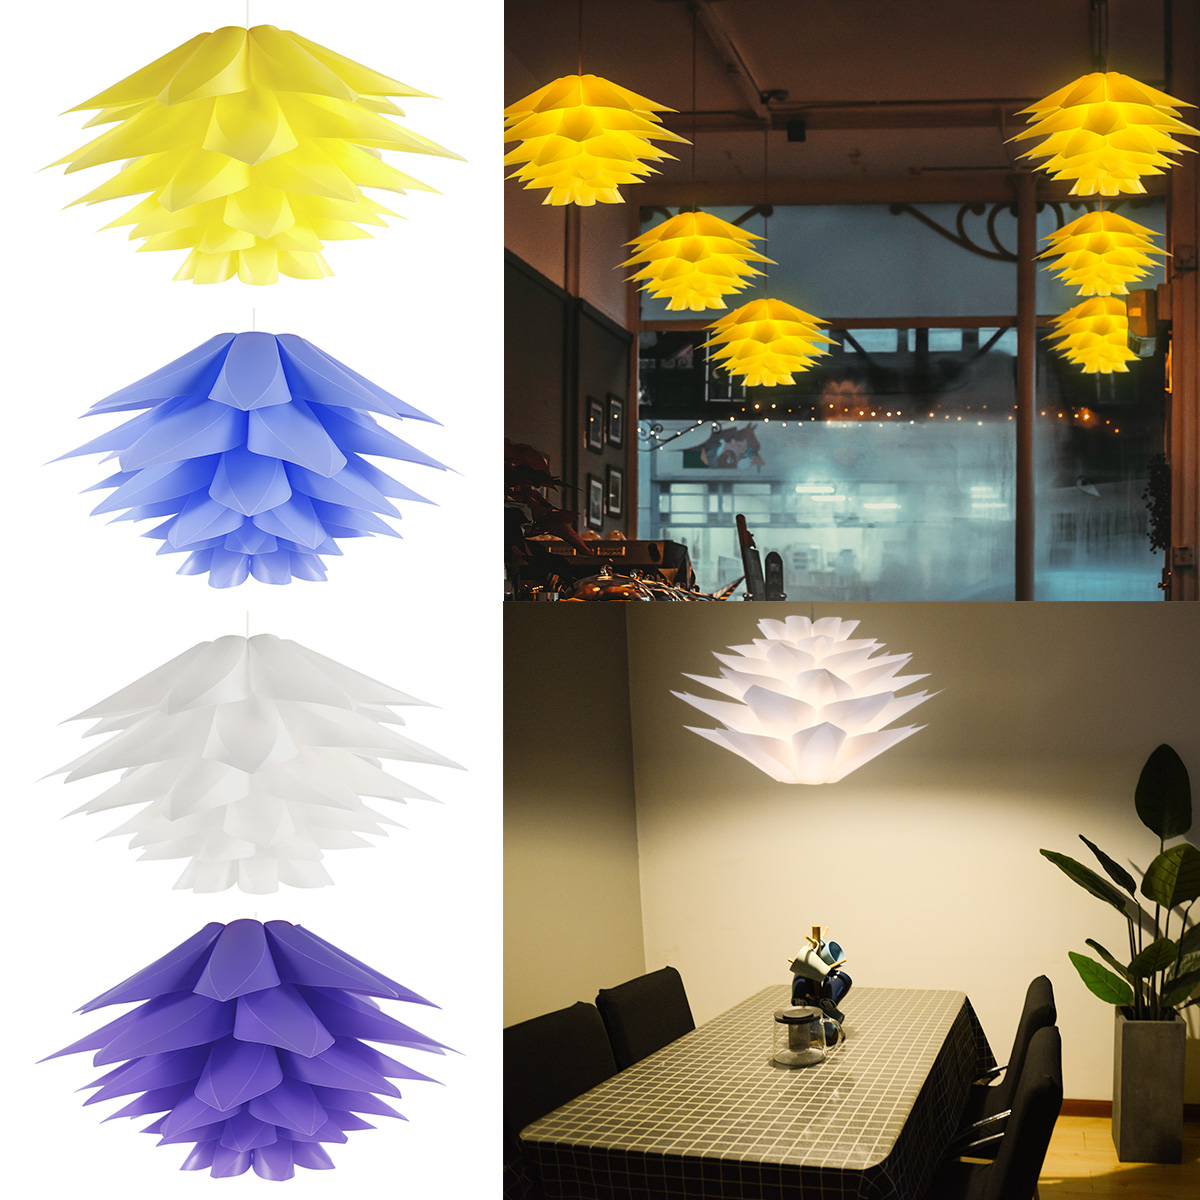 Diy Puzzle Lampshade Ceiling Mount Lotus Flower Jigsaw Iq Lamp